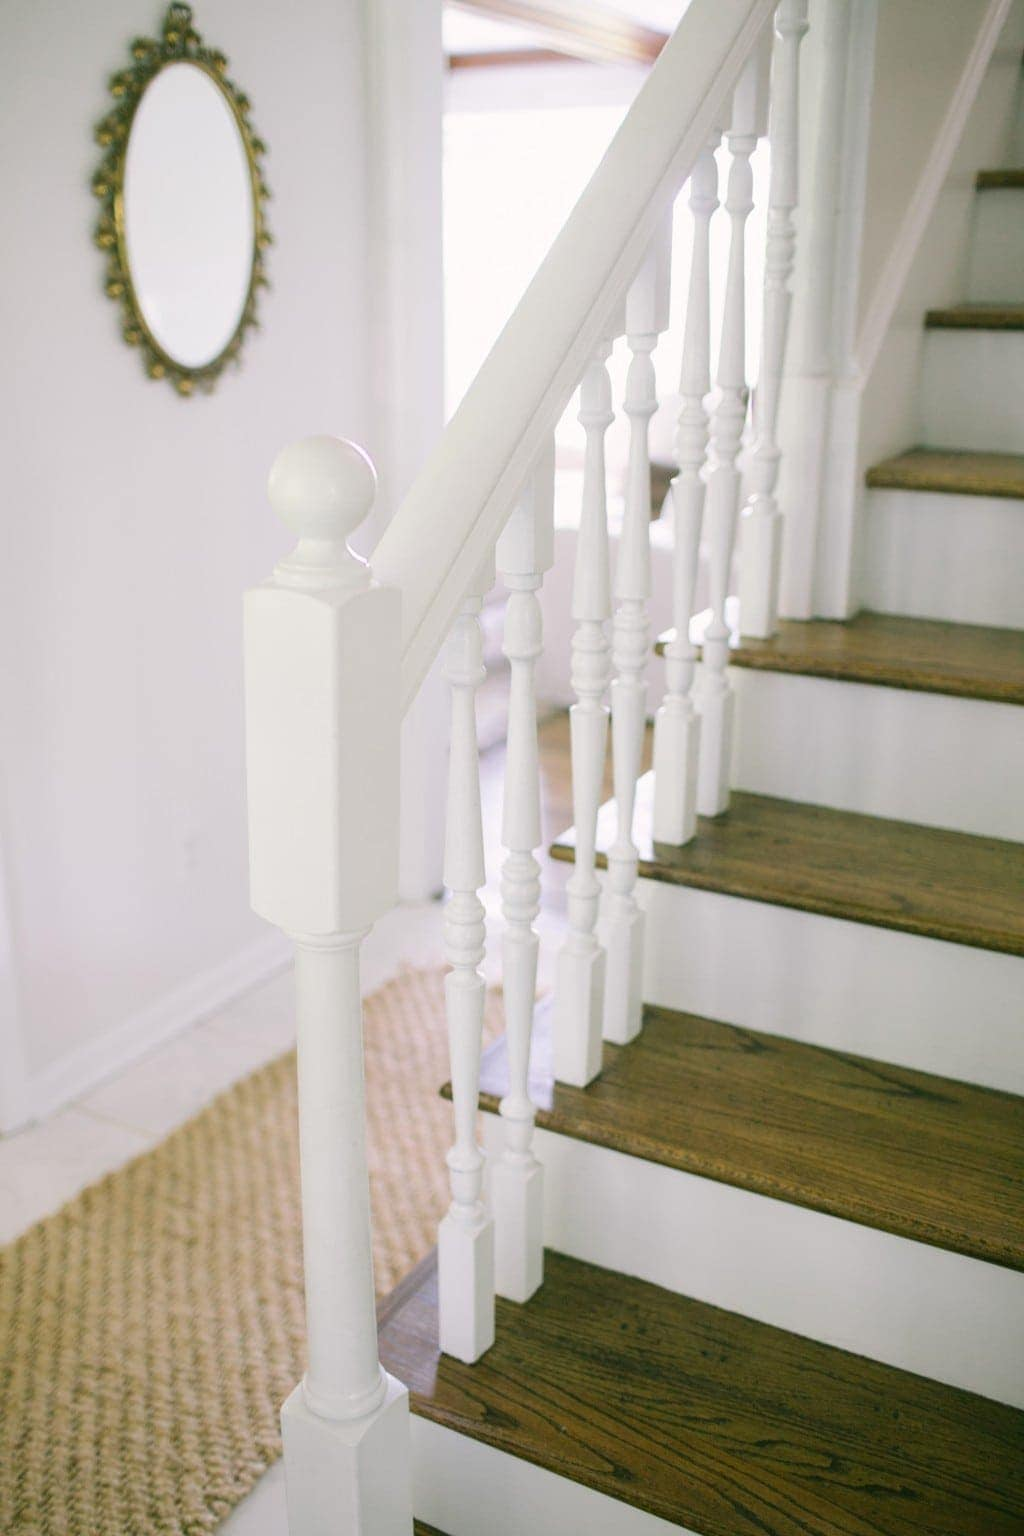 A traditional stairwell makeover, exposing the treads & risers